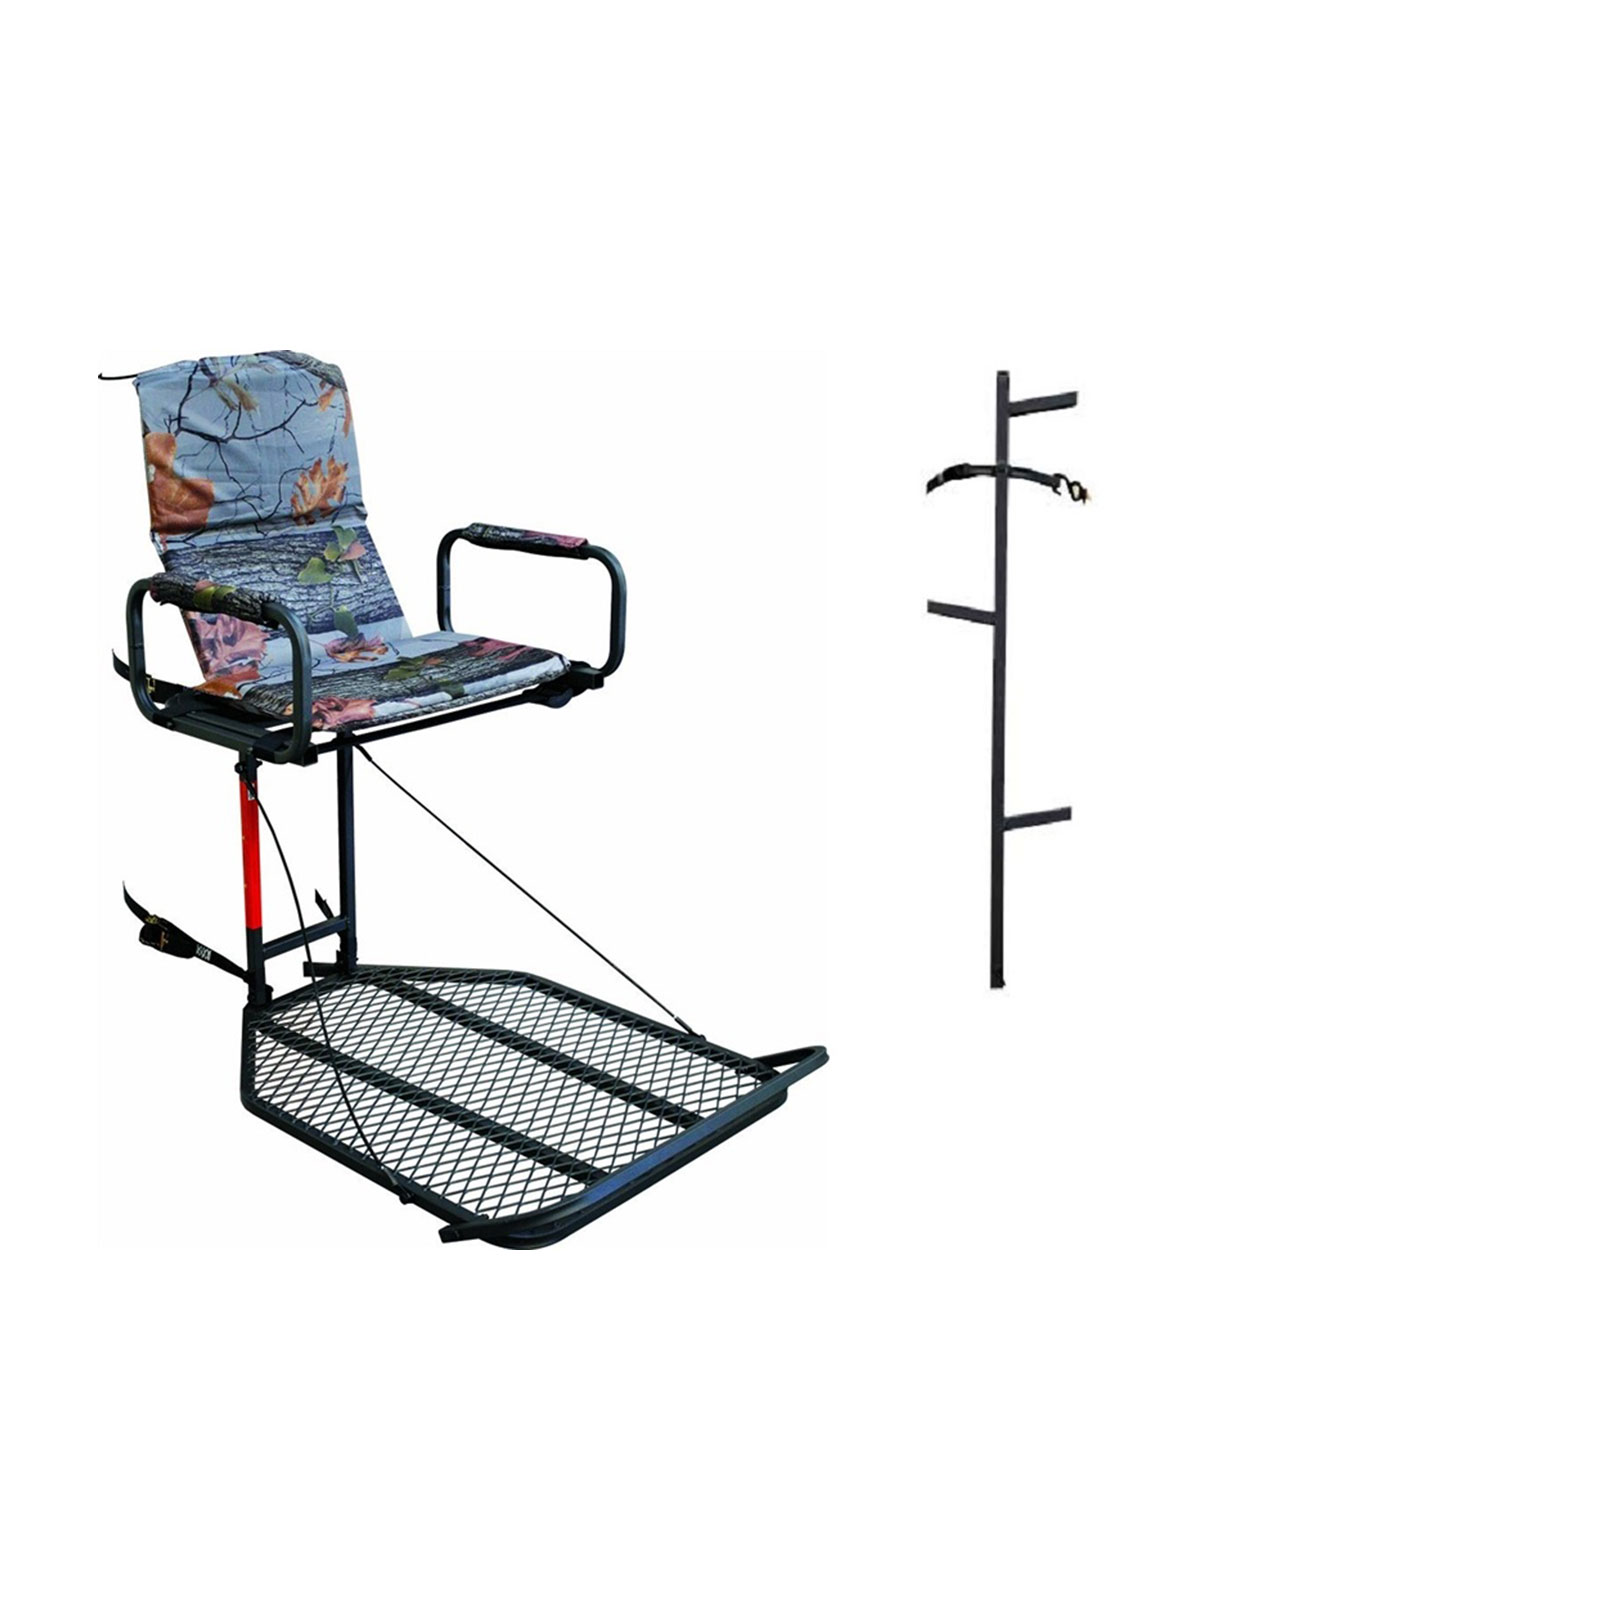 Direct Outdoor Deluxe Comfort Fixed Treestand 02 Mkhs01